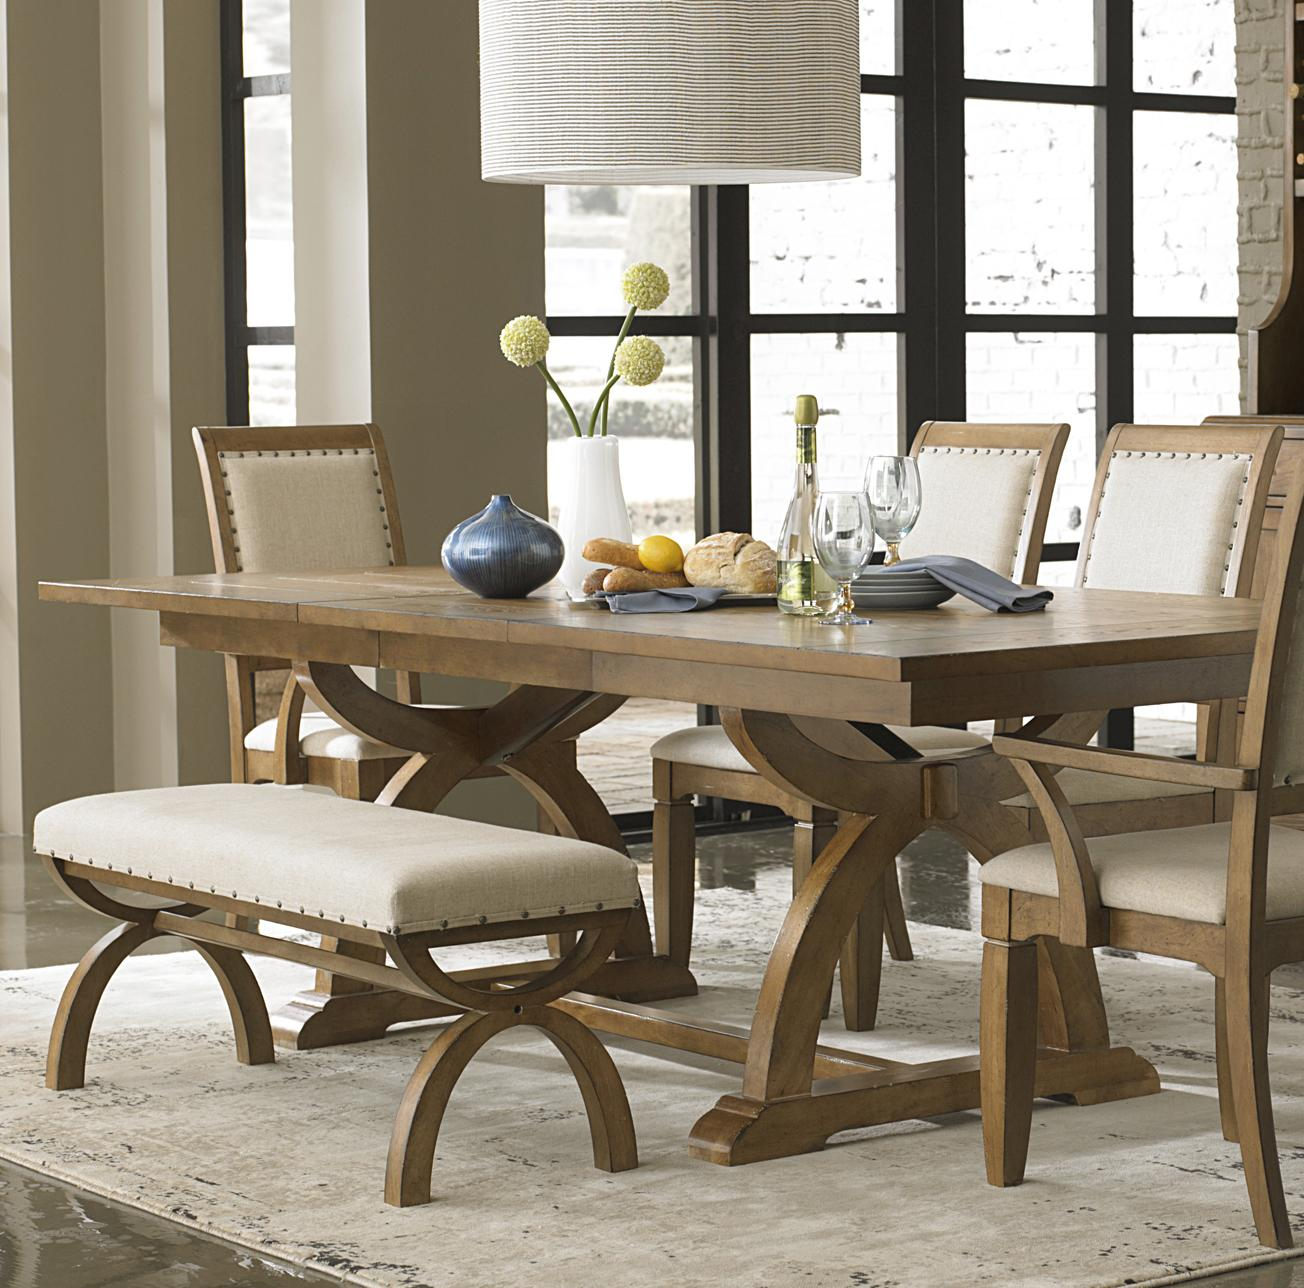 Designer Tische Esszimmer Dining Room Table With Bench Seat Homesfeed